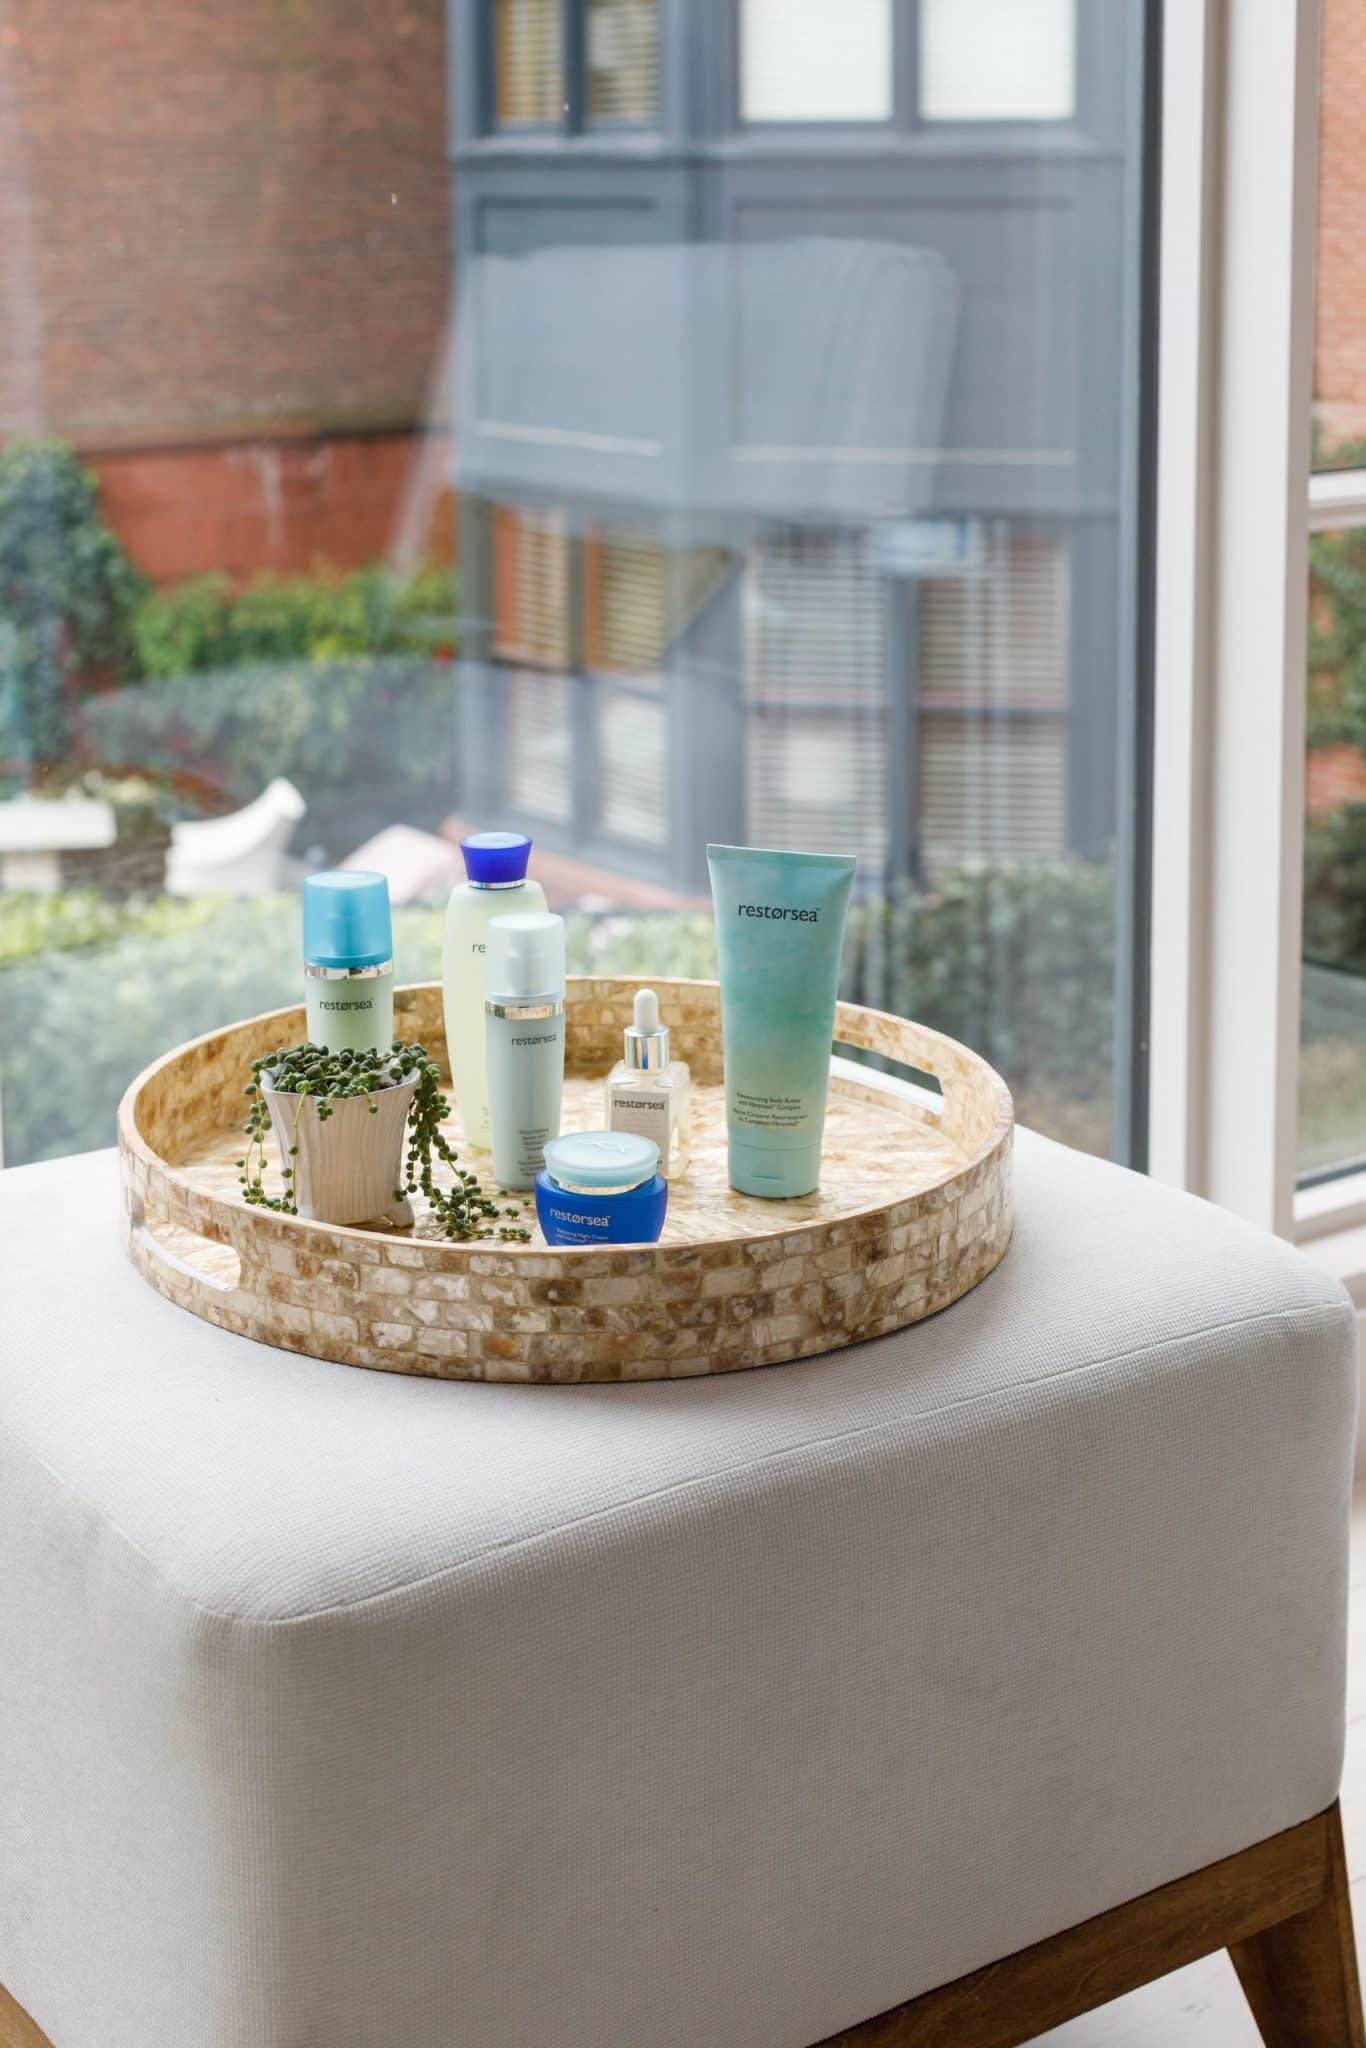 Products used at the spa